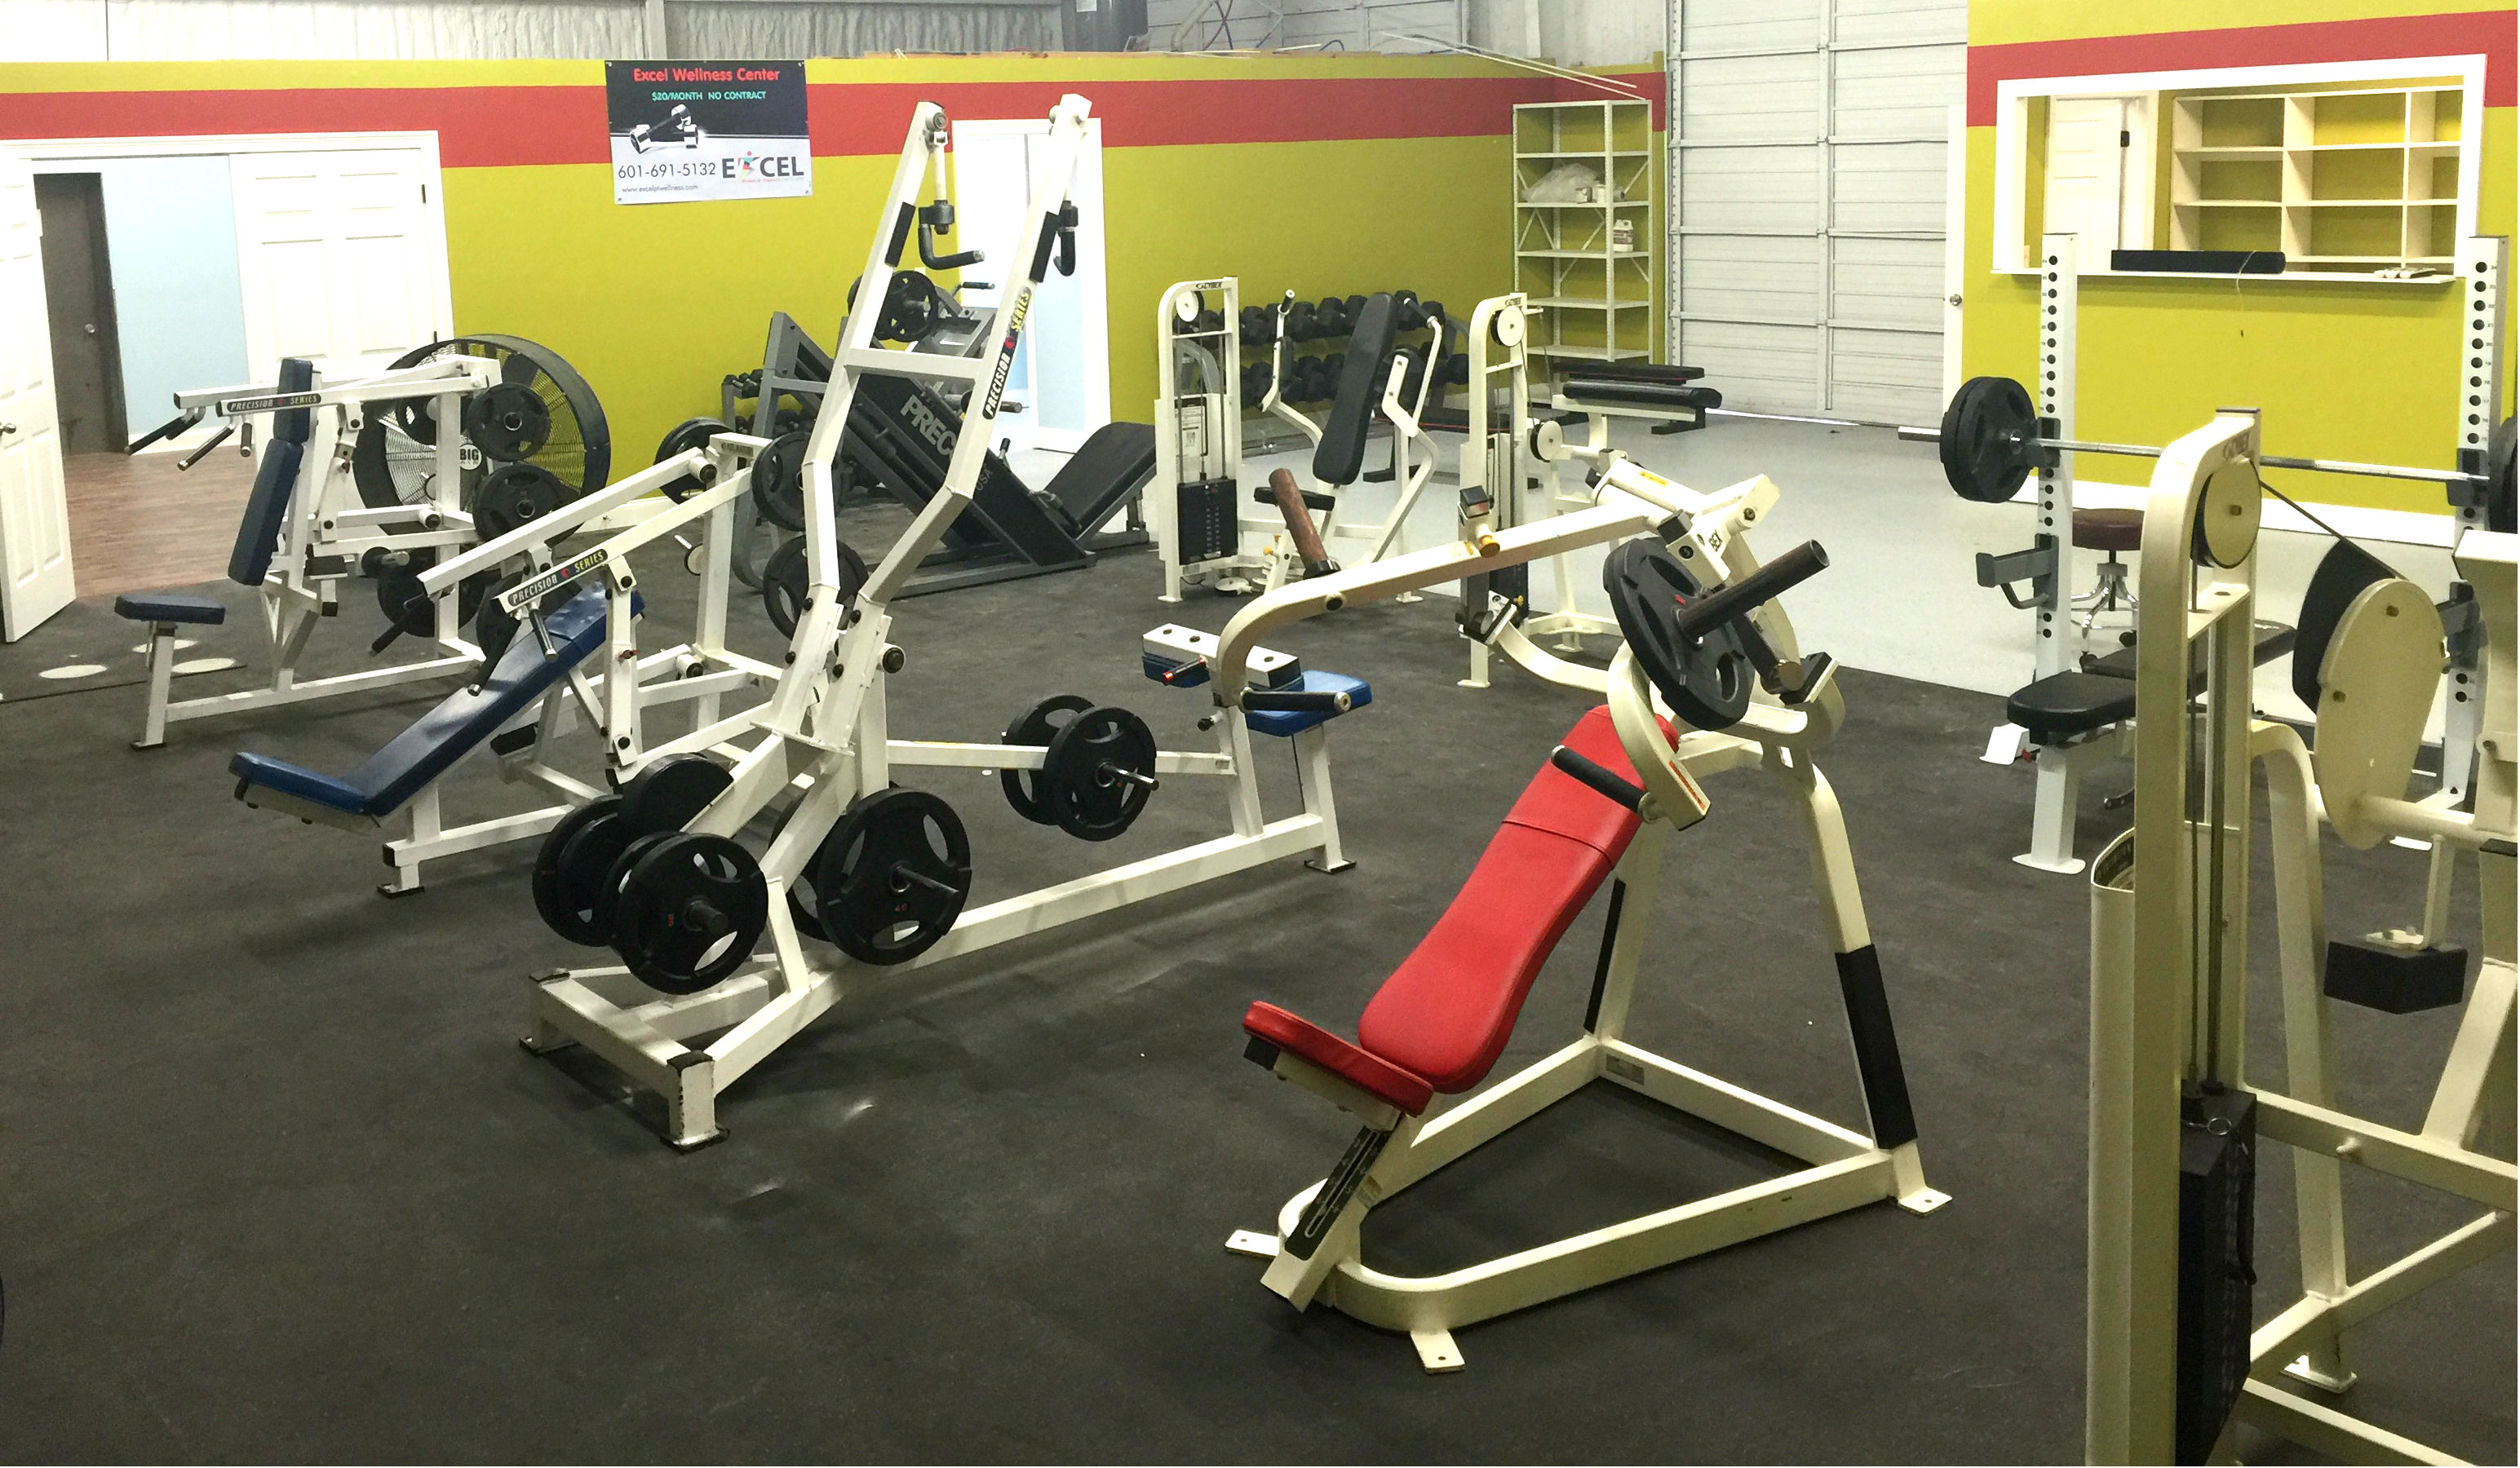 Excel physical therapy - Reviews Of Excel Physical Therapy Wellness